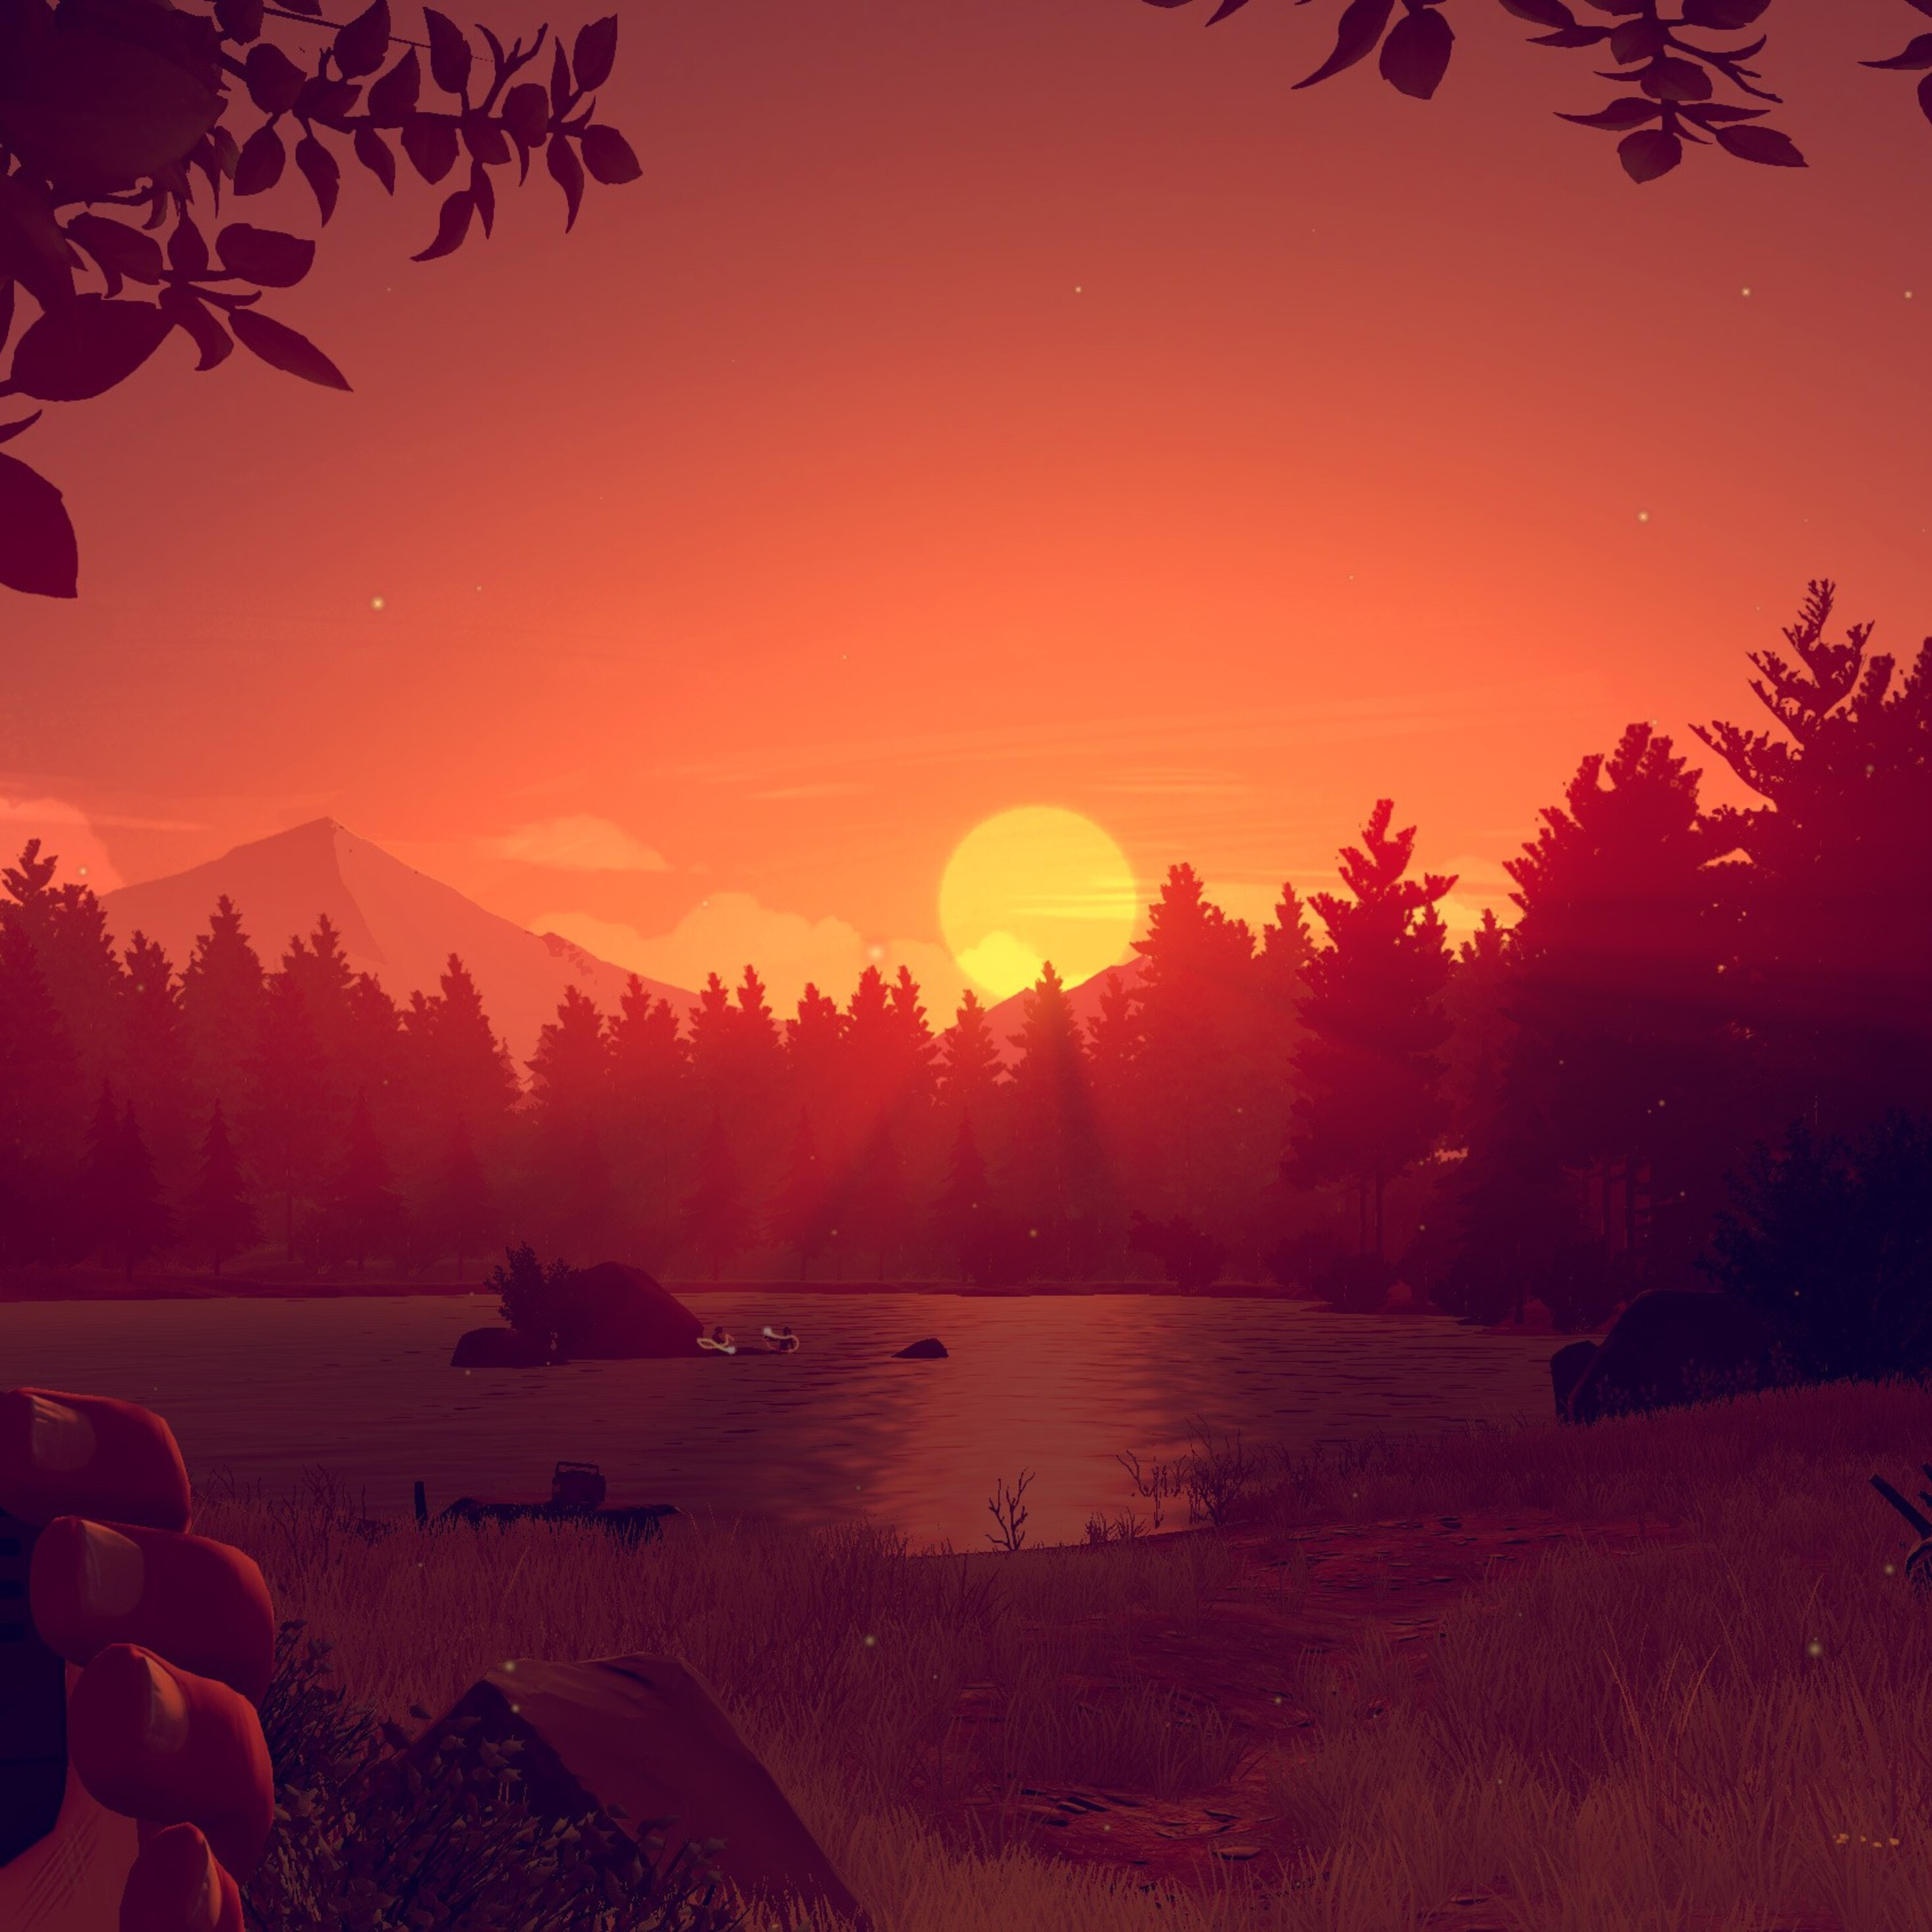 2932x2932 Firewatch Game Sunset Ipad Pro Retina Display HD